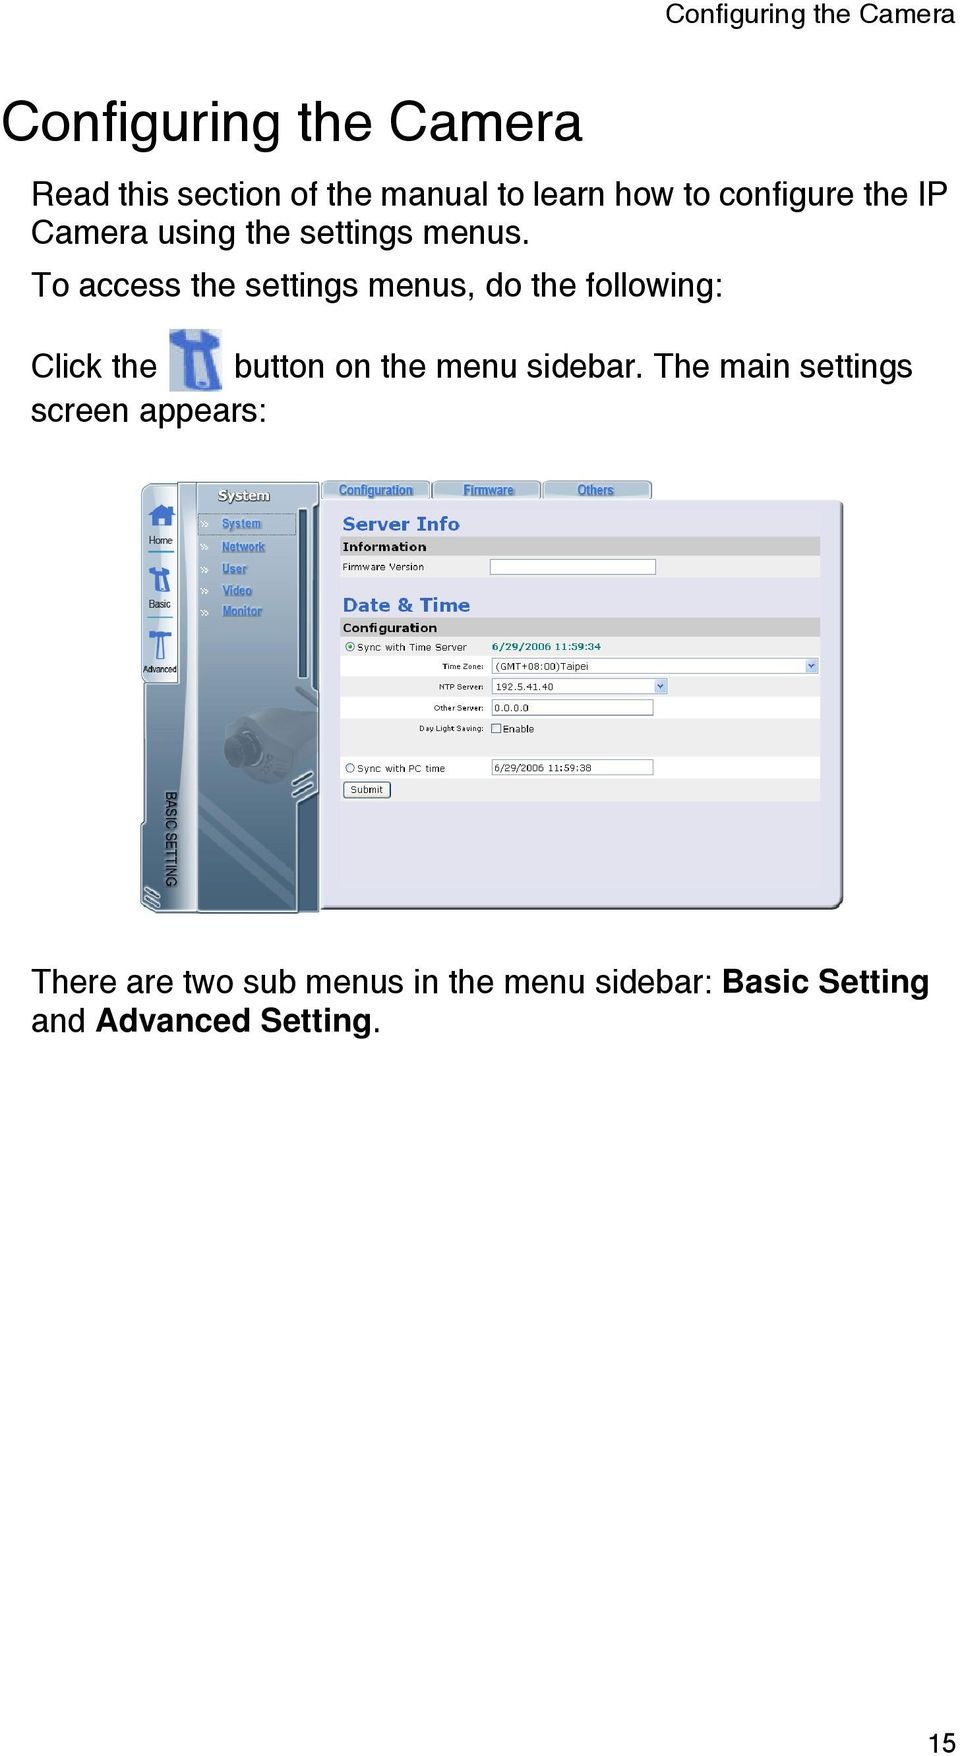 To access the settings menus, do the following: Click the button on the menu sidebar.